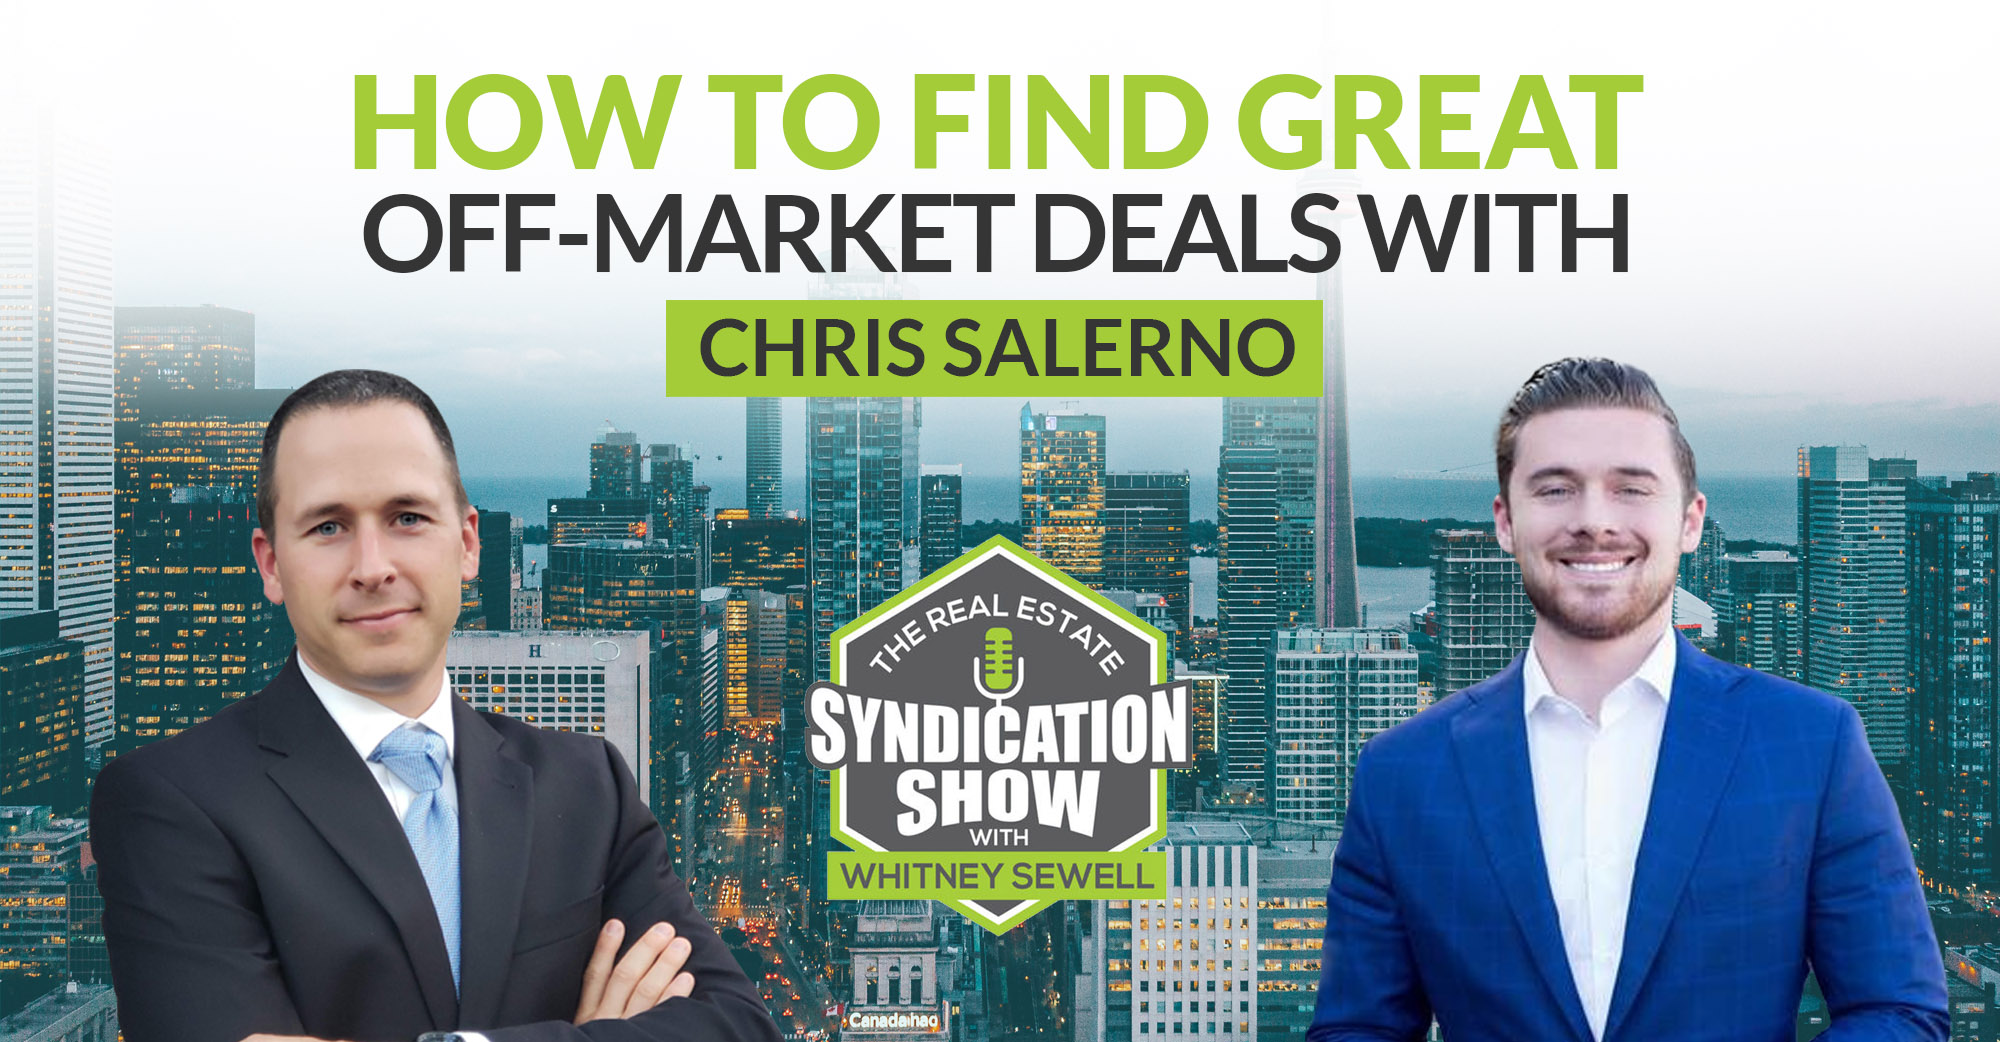 How to Find Great Off-Market Deals with Chris Salerno